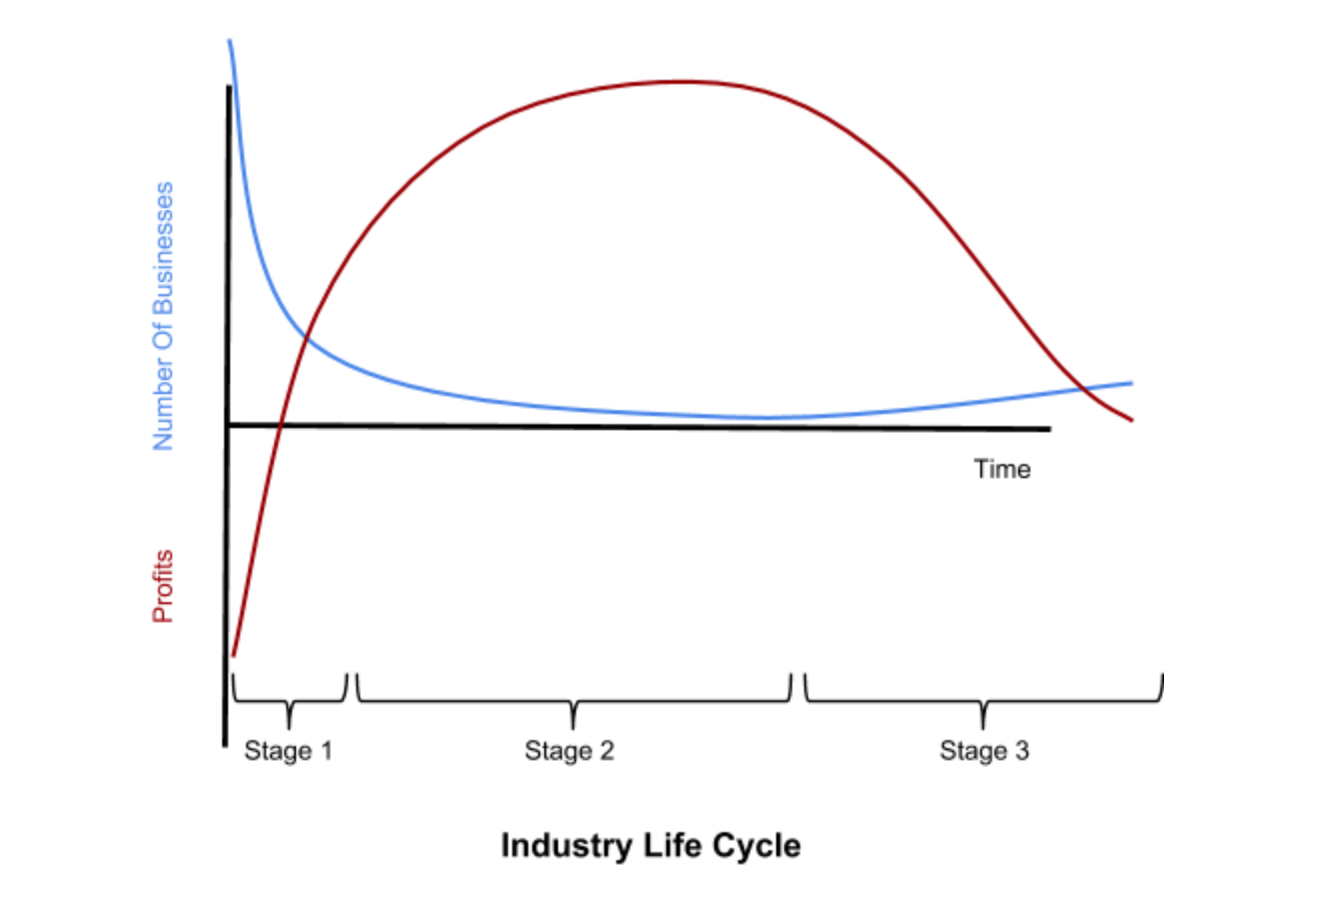 2018Q3_industry_life_cycle_compressed.png